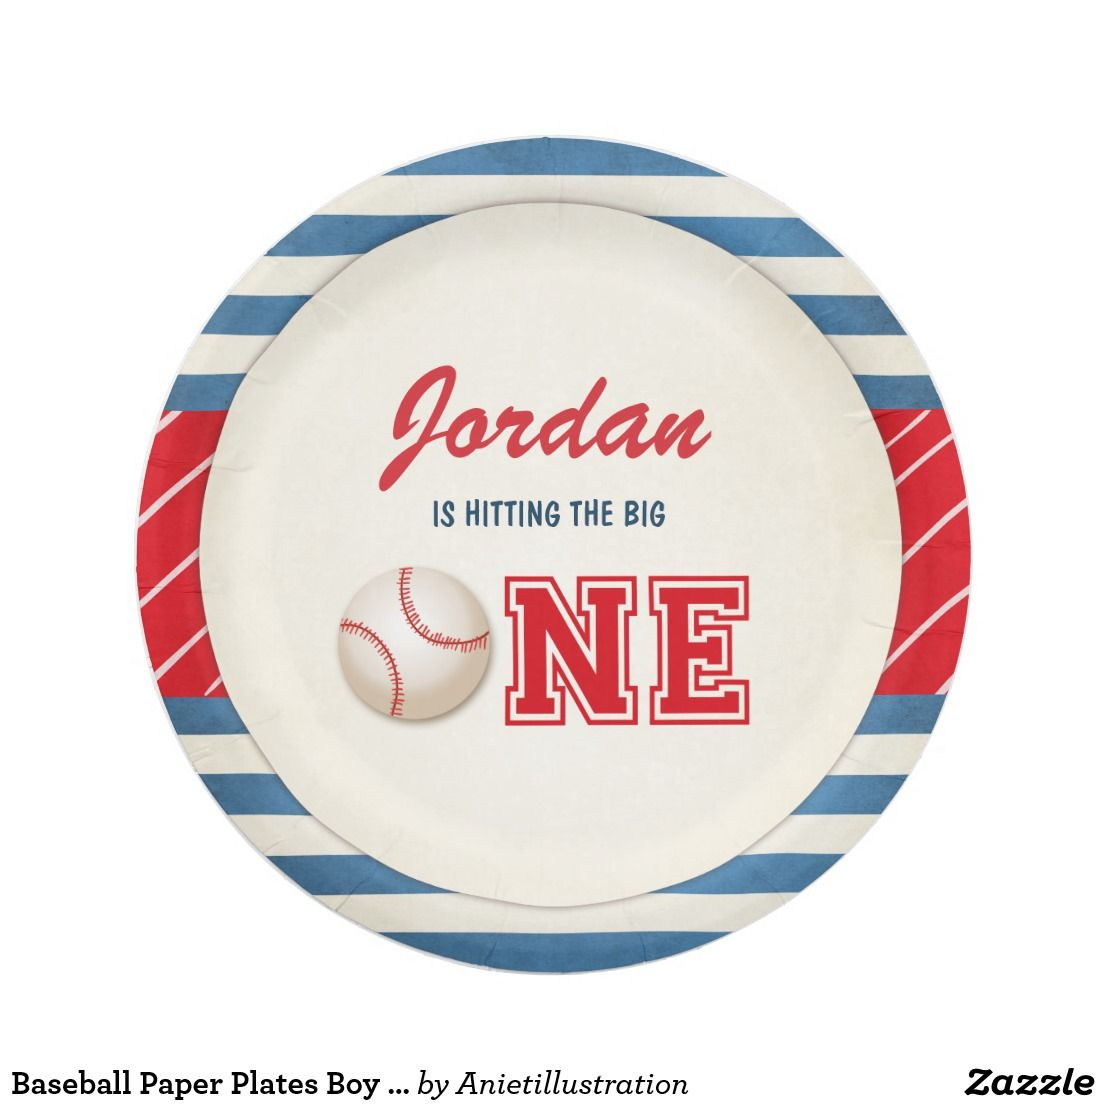 Baseball Paper Plates Boy Birthday Big one Sports ? A perfect addition to your party!  sc 1 st  Pinterest & Baseball Paper Plates Boy Birthday Big one Sports | Boy birthday and ...